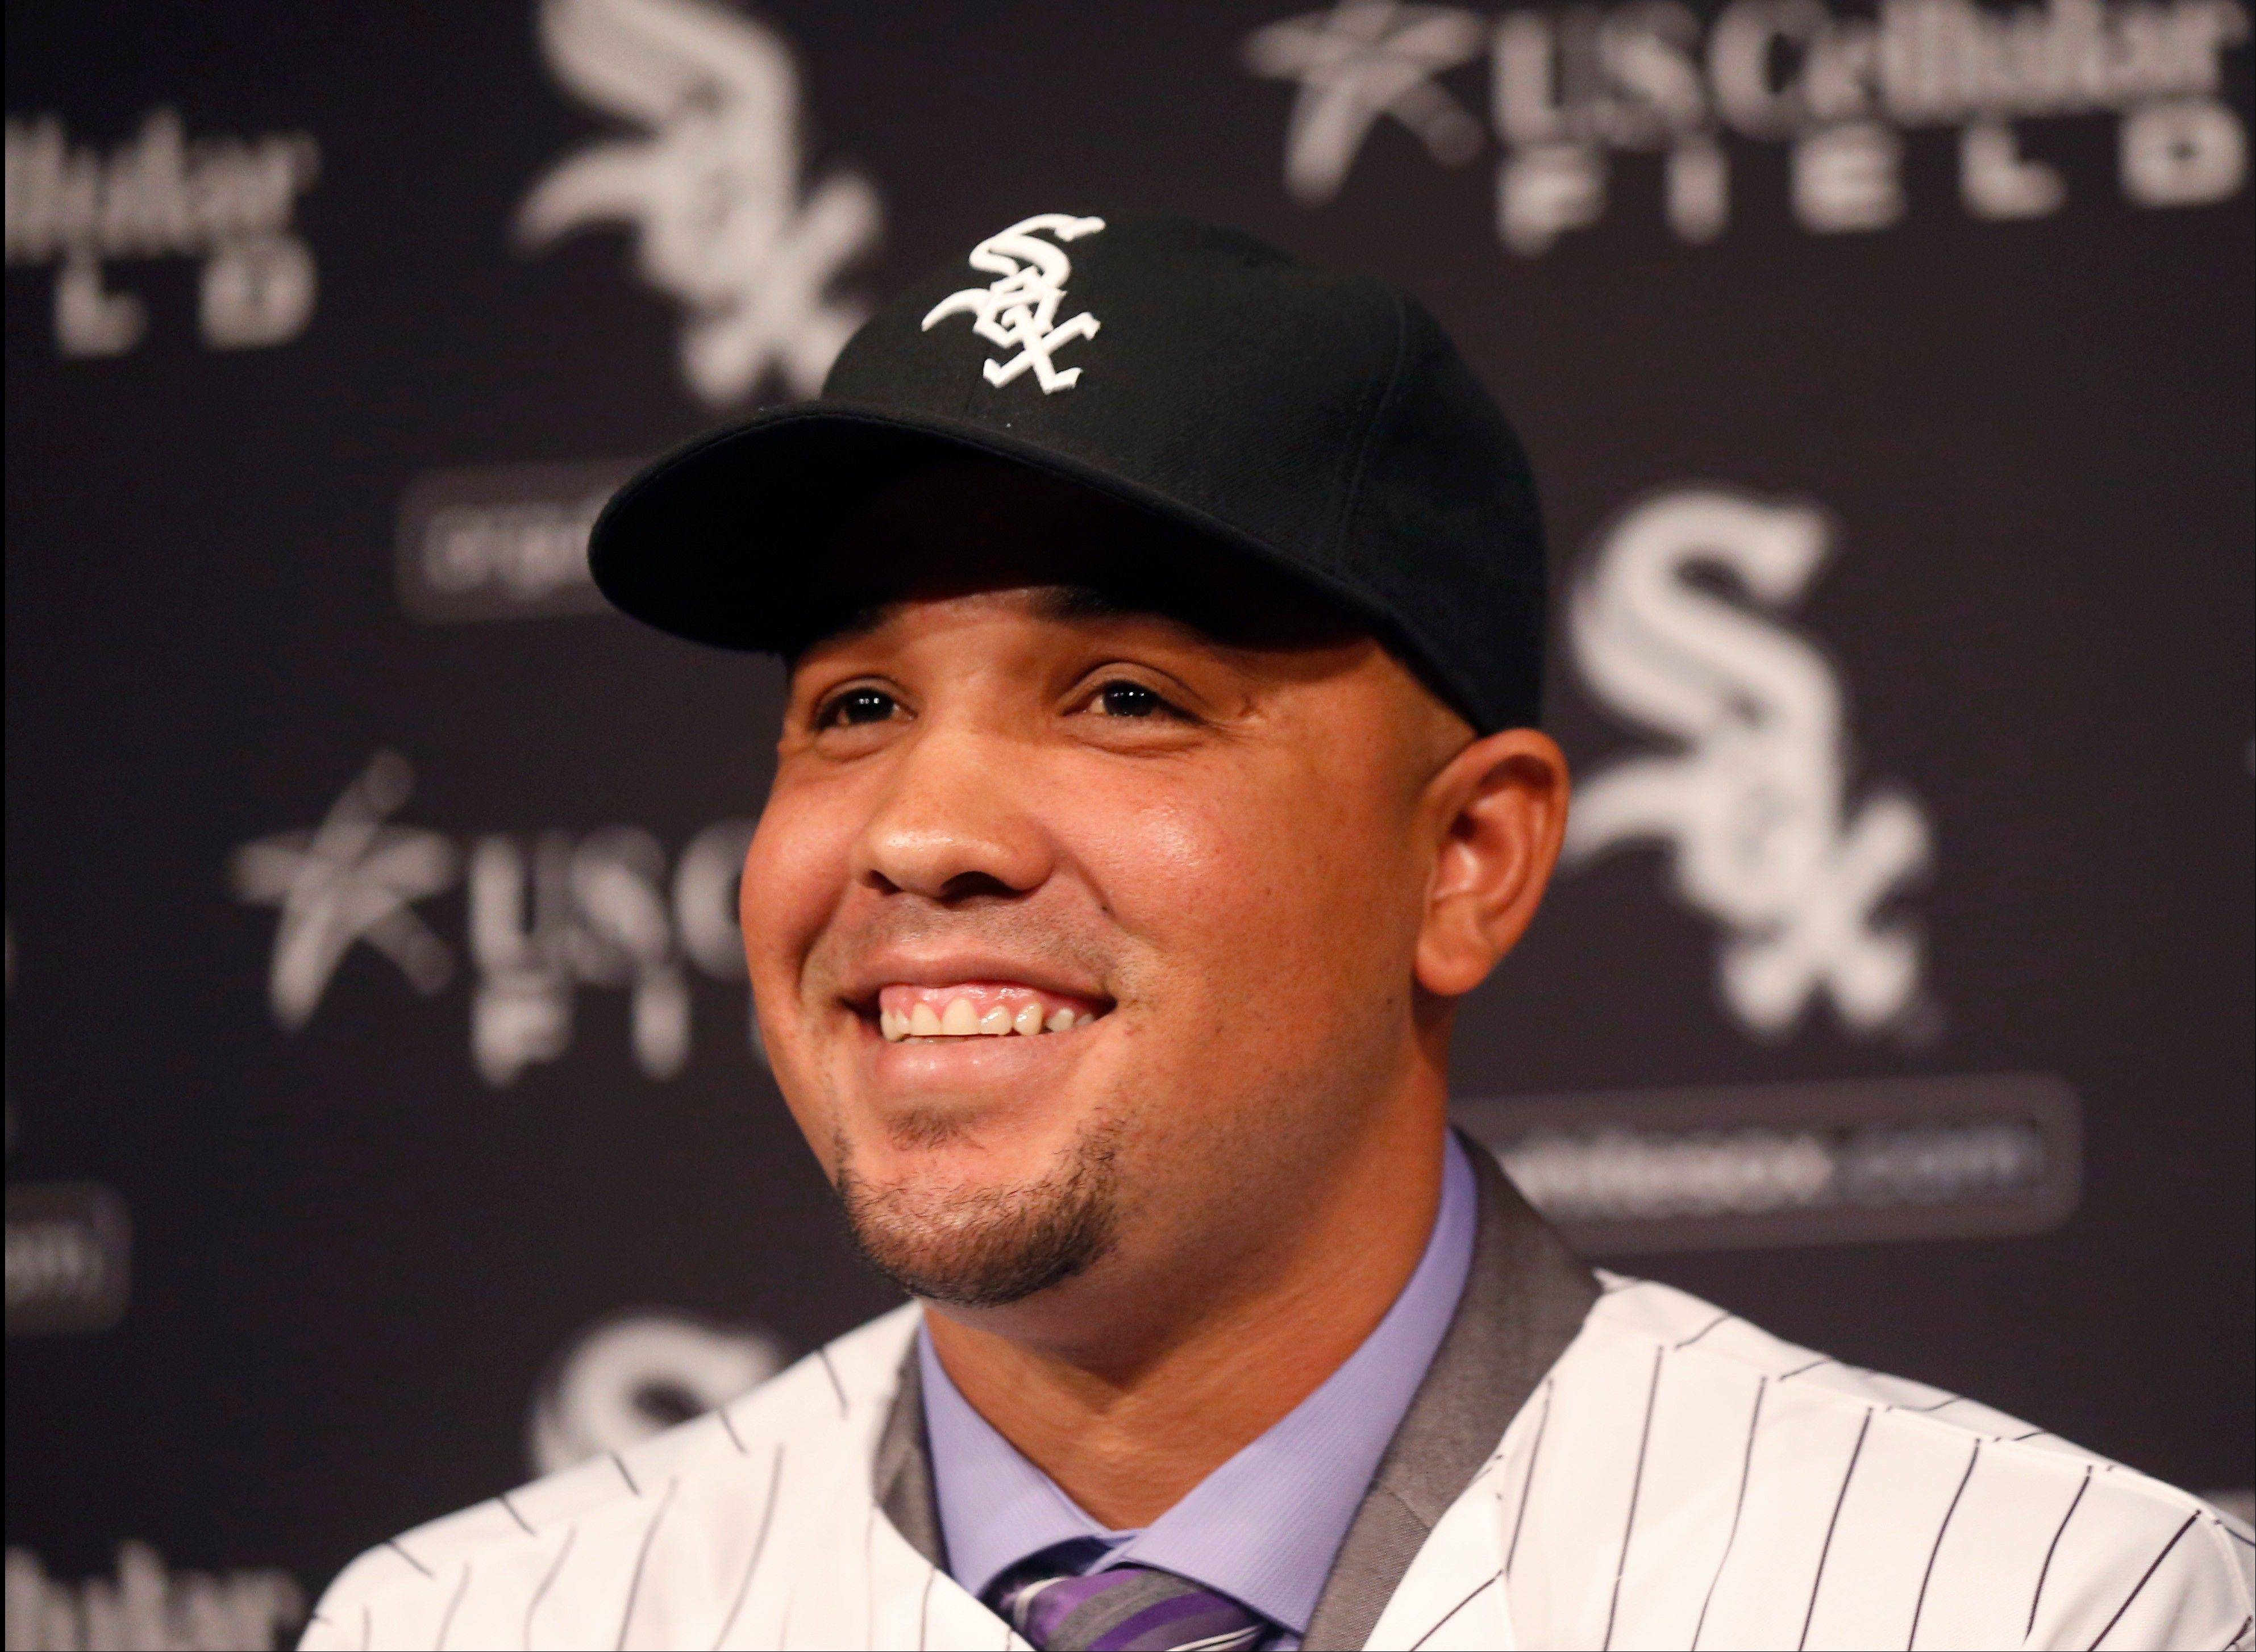 Cuban slugger Jose Abreu has good reason to smile after signing a six-year, $68 million deal with the White Sox.